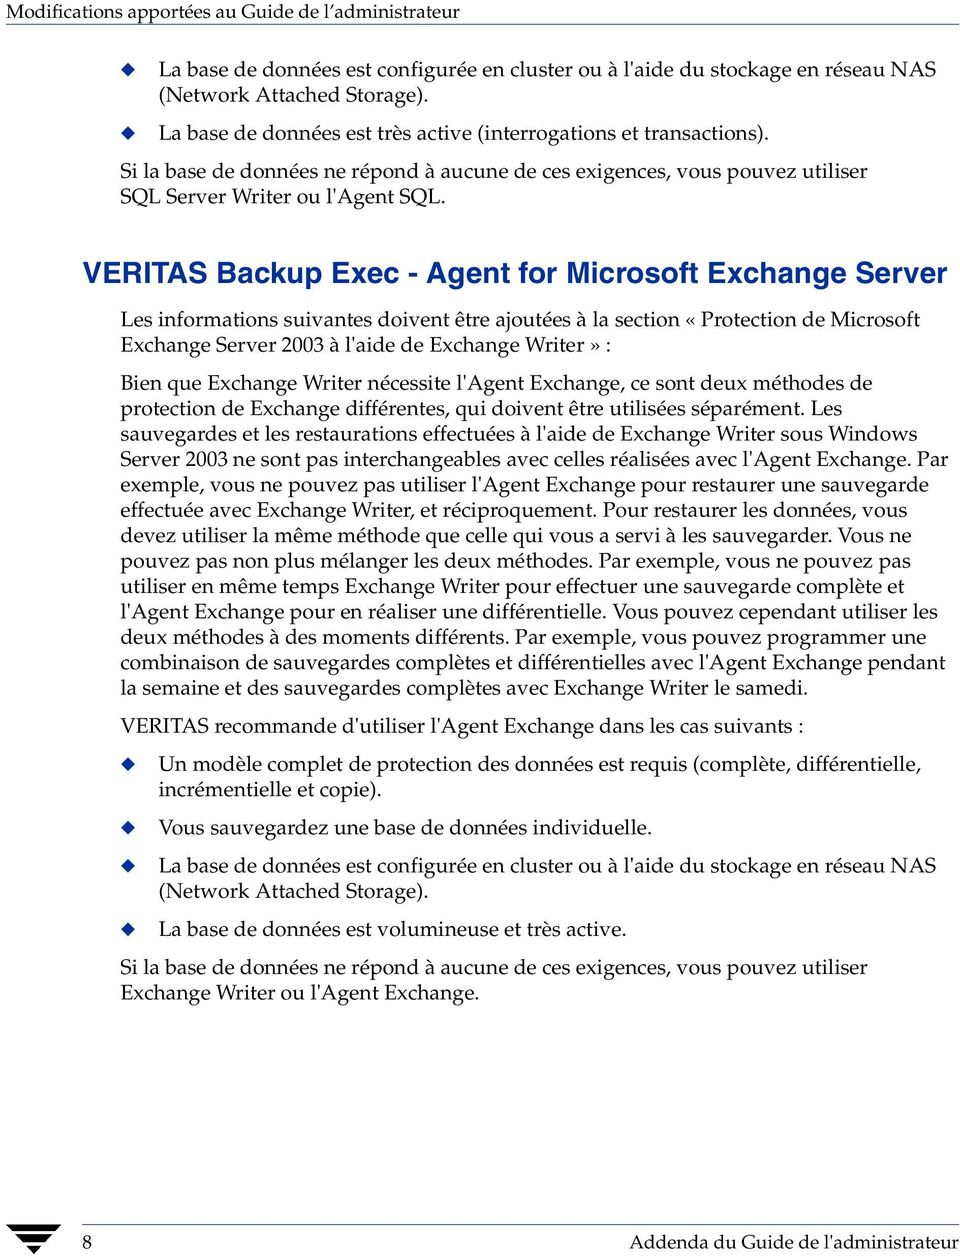 VERITAS Backup Exec - Agent for Microsoft Exchange Server Les informations suivantes doivent être ajoutées à la section «Protection de Microsoft Exchange Server 2003 à l'aide de Exchange Writer» :